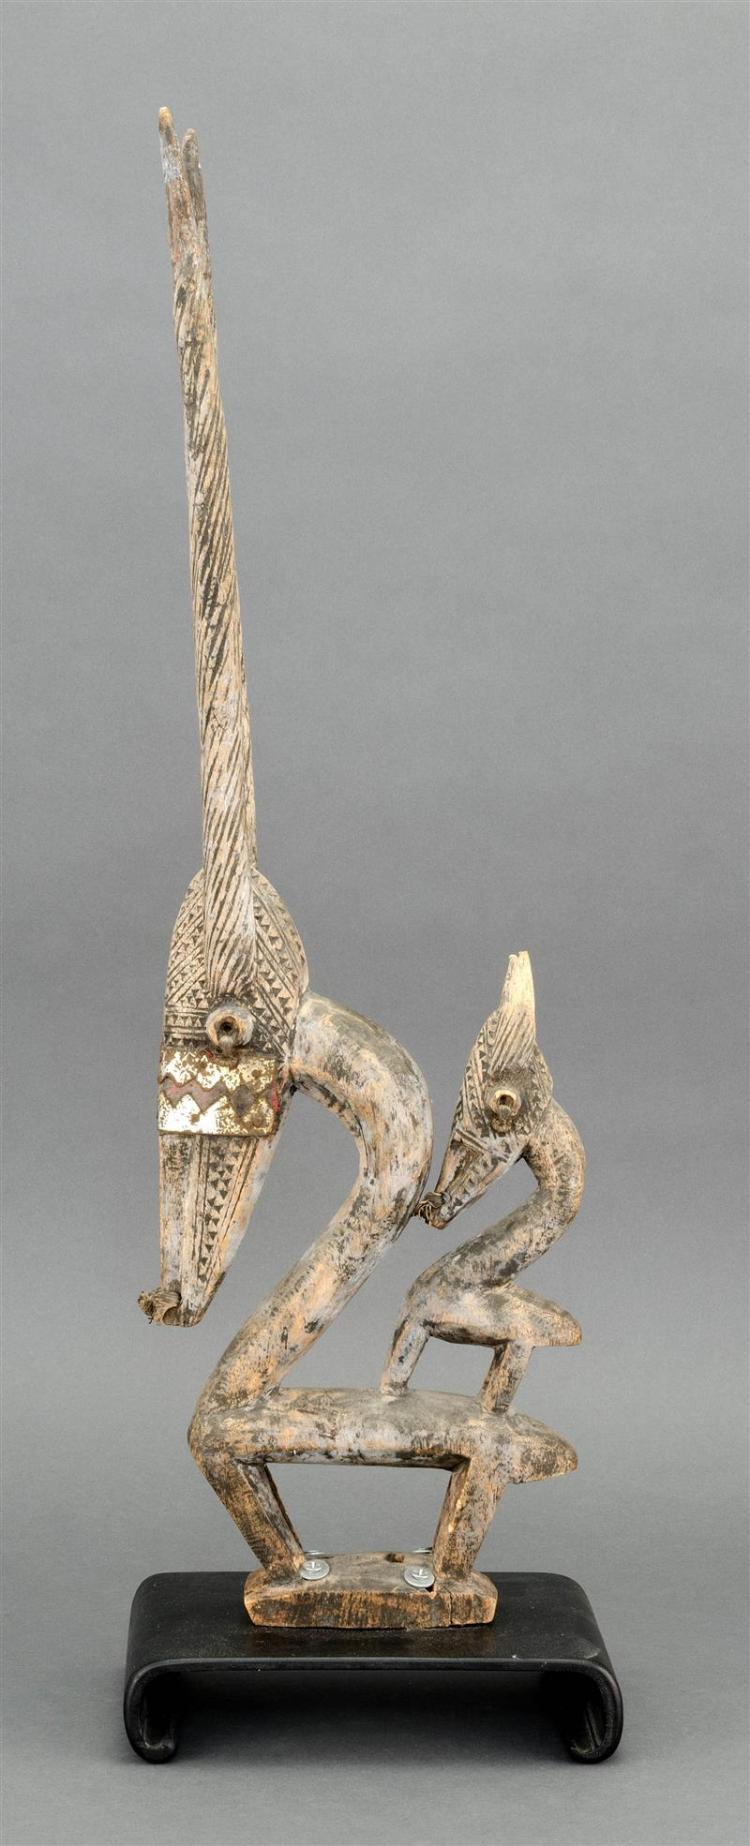 BAMBARAN ANTELOPE HEADDRESS Depicting an antelope and its young. Height 27.5